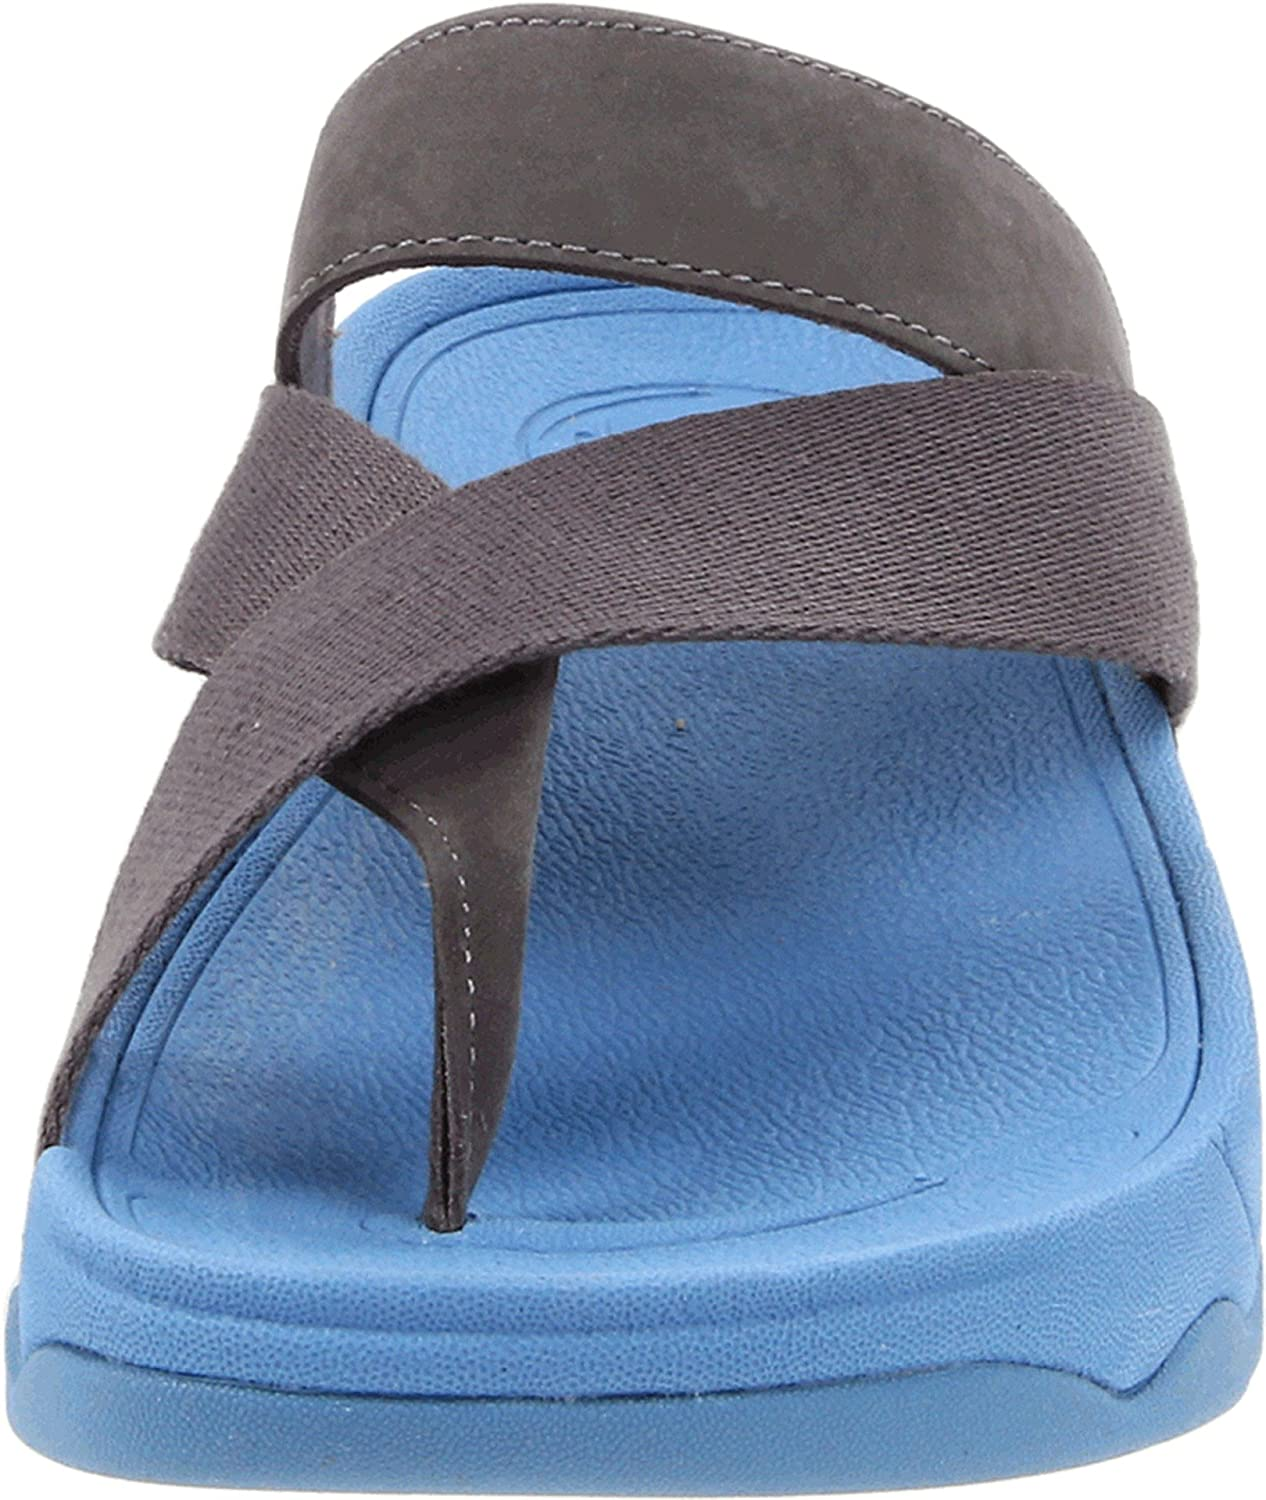 Amazon.com: FitFlop Sling Mujer Sandalia, Gris, 5 B(M) US: Shoes